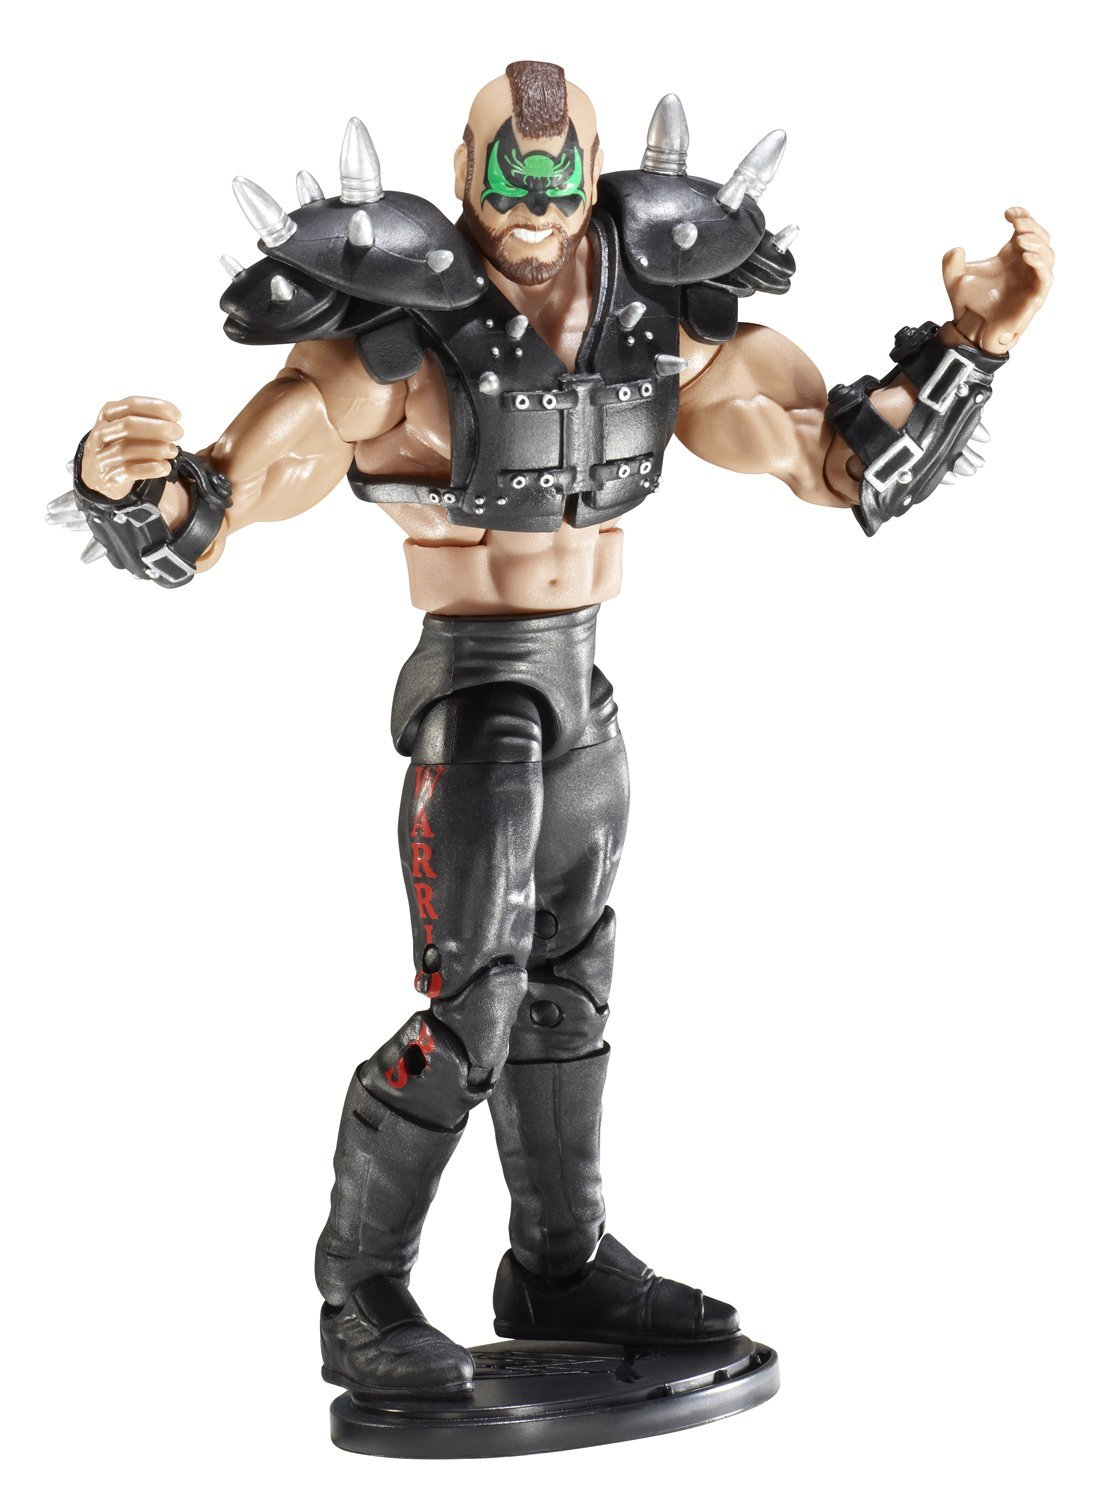 WWE Legends Road Warrior Animal Collector Figure By Mattel by